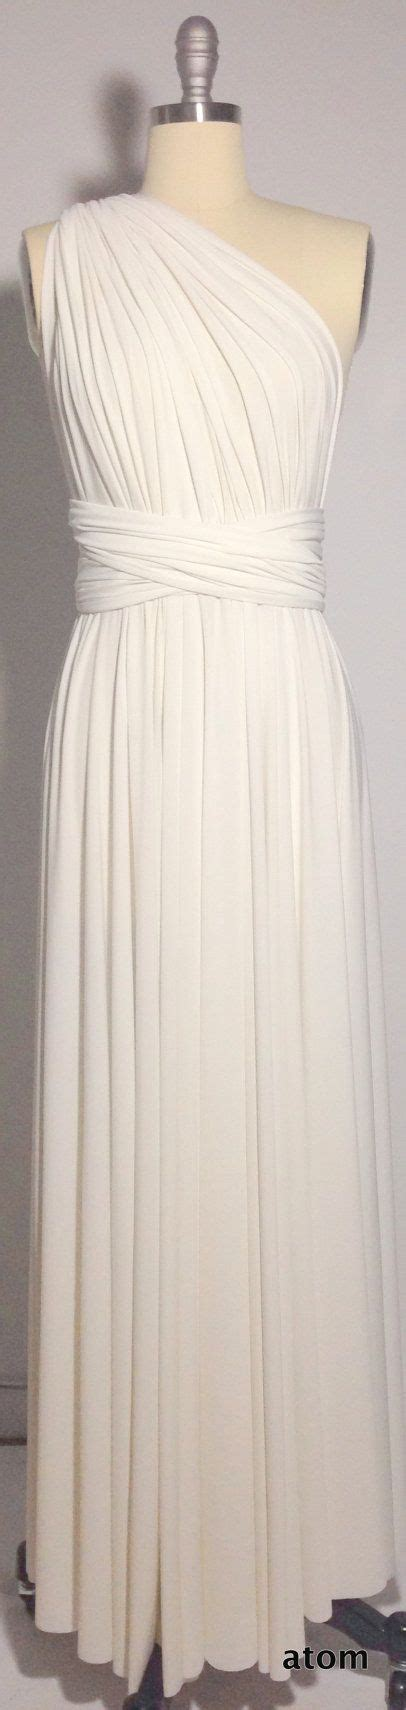 How To Fold Infinity Dress 25 Best Ideas About Infinity Dress Bridesmaid On